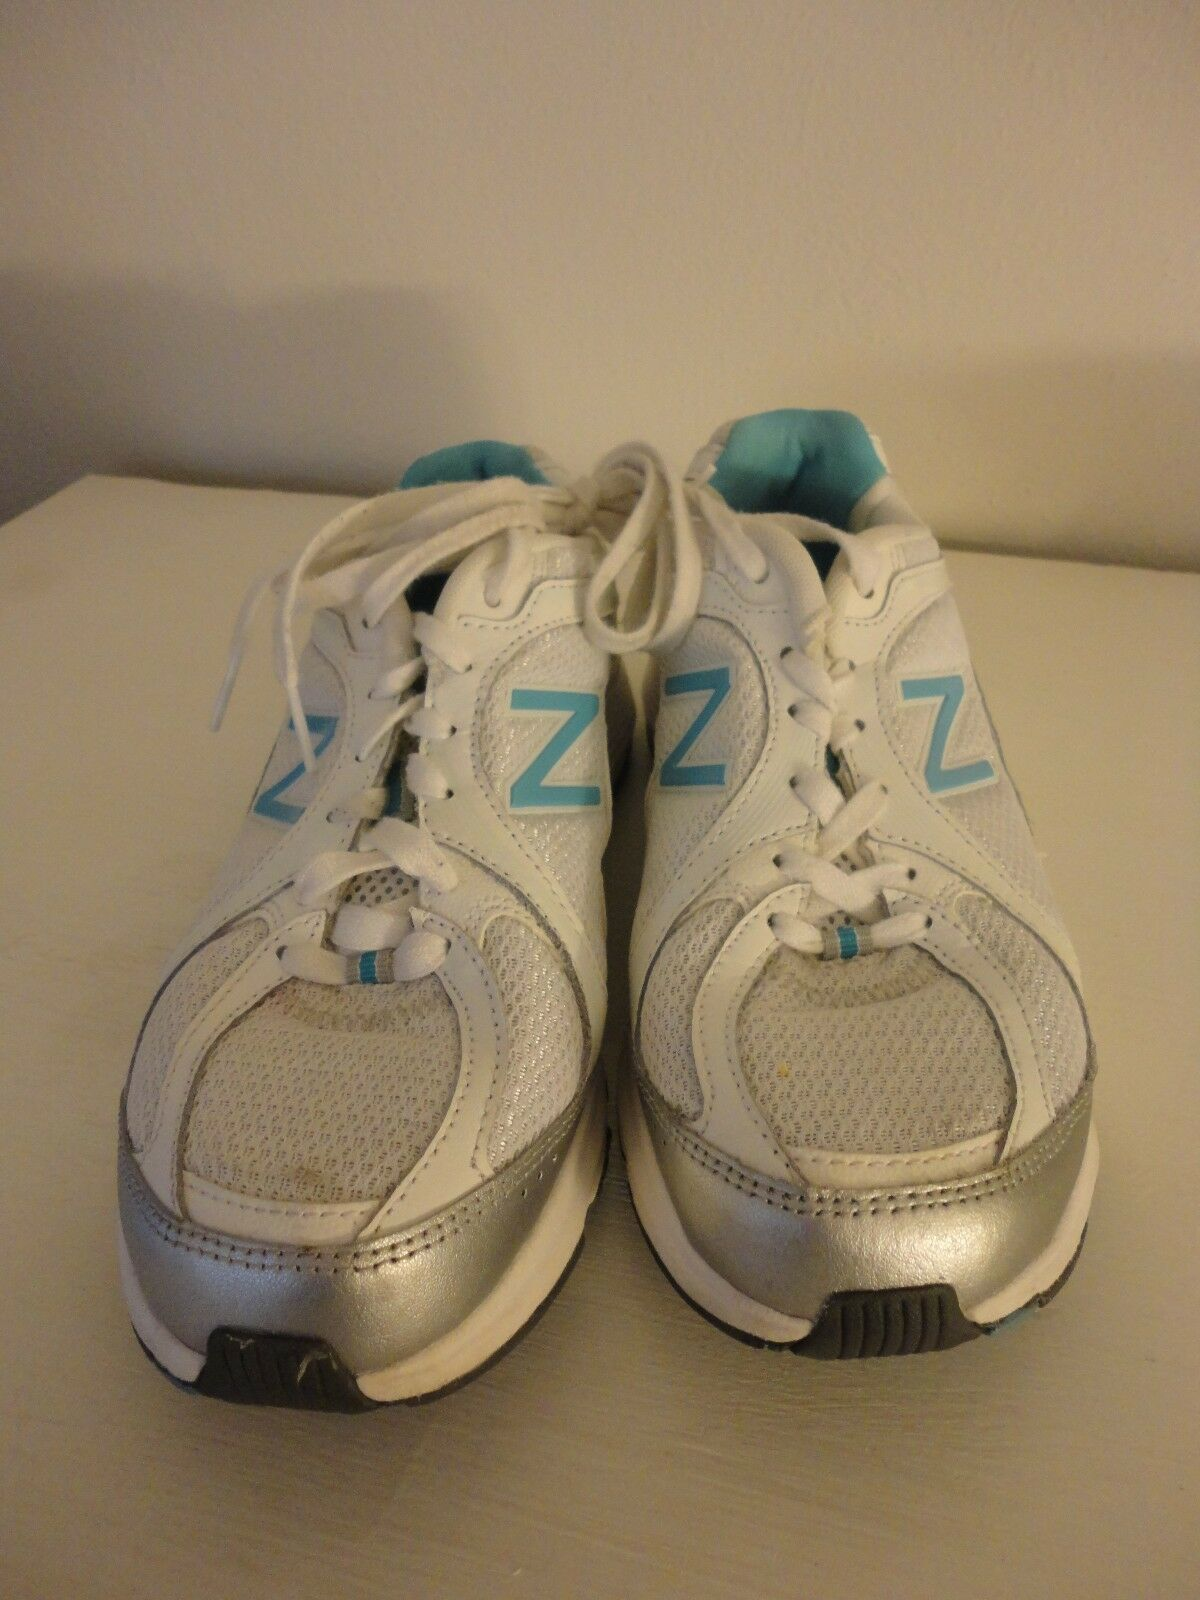 New Balance Womens Blue White Athletic Shoes Sneakers walking strike path Sz 7.5